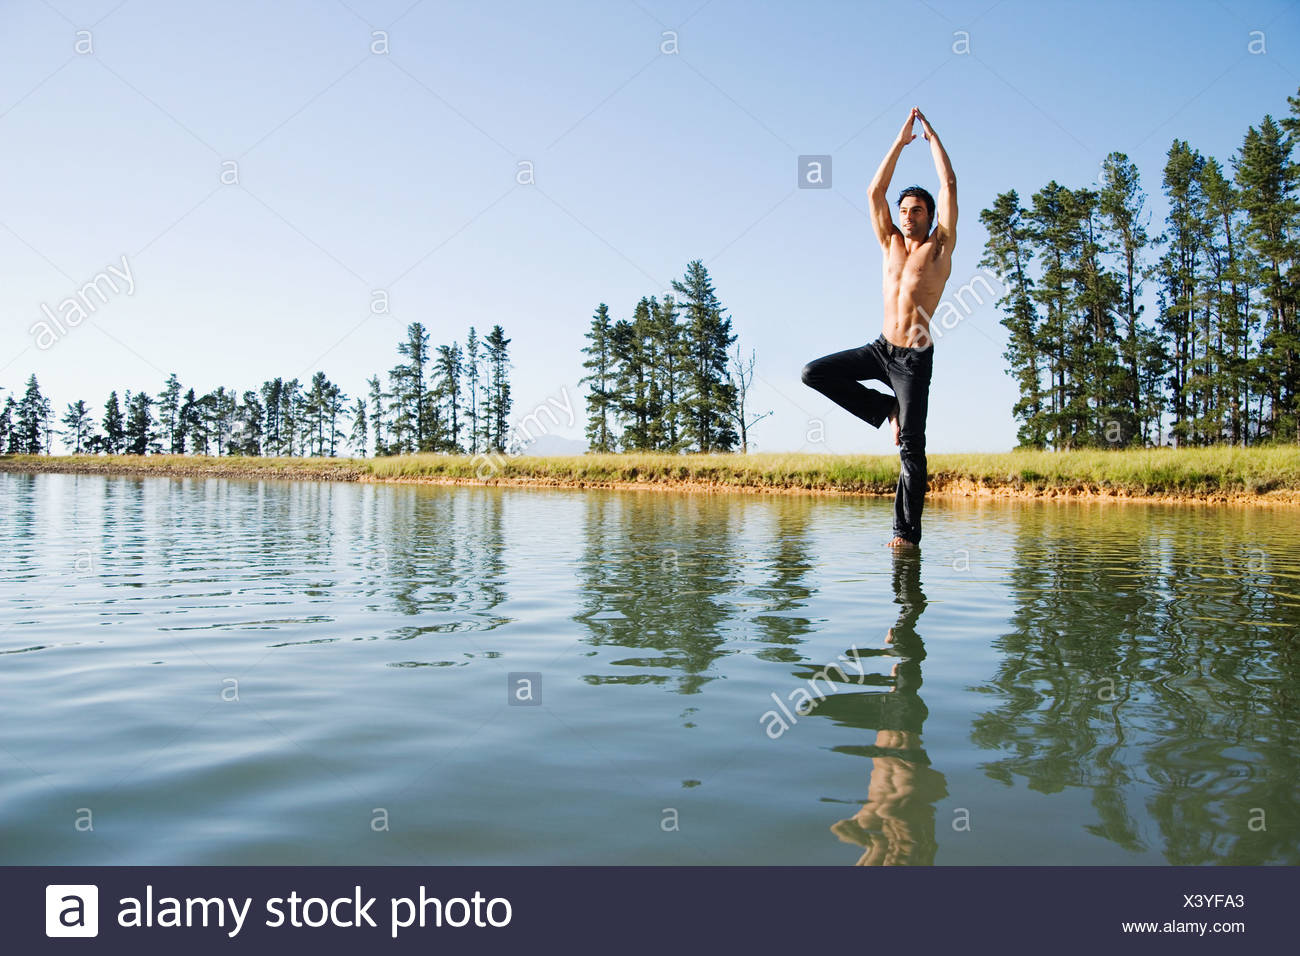 Man doing yoga on water with trees Stock Photo